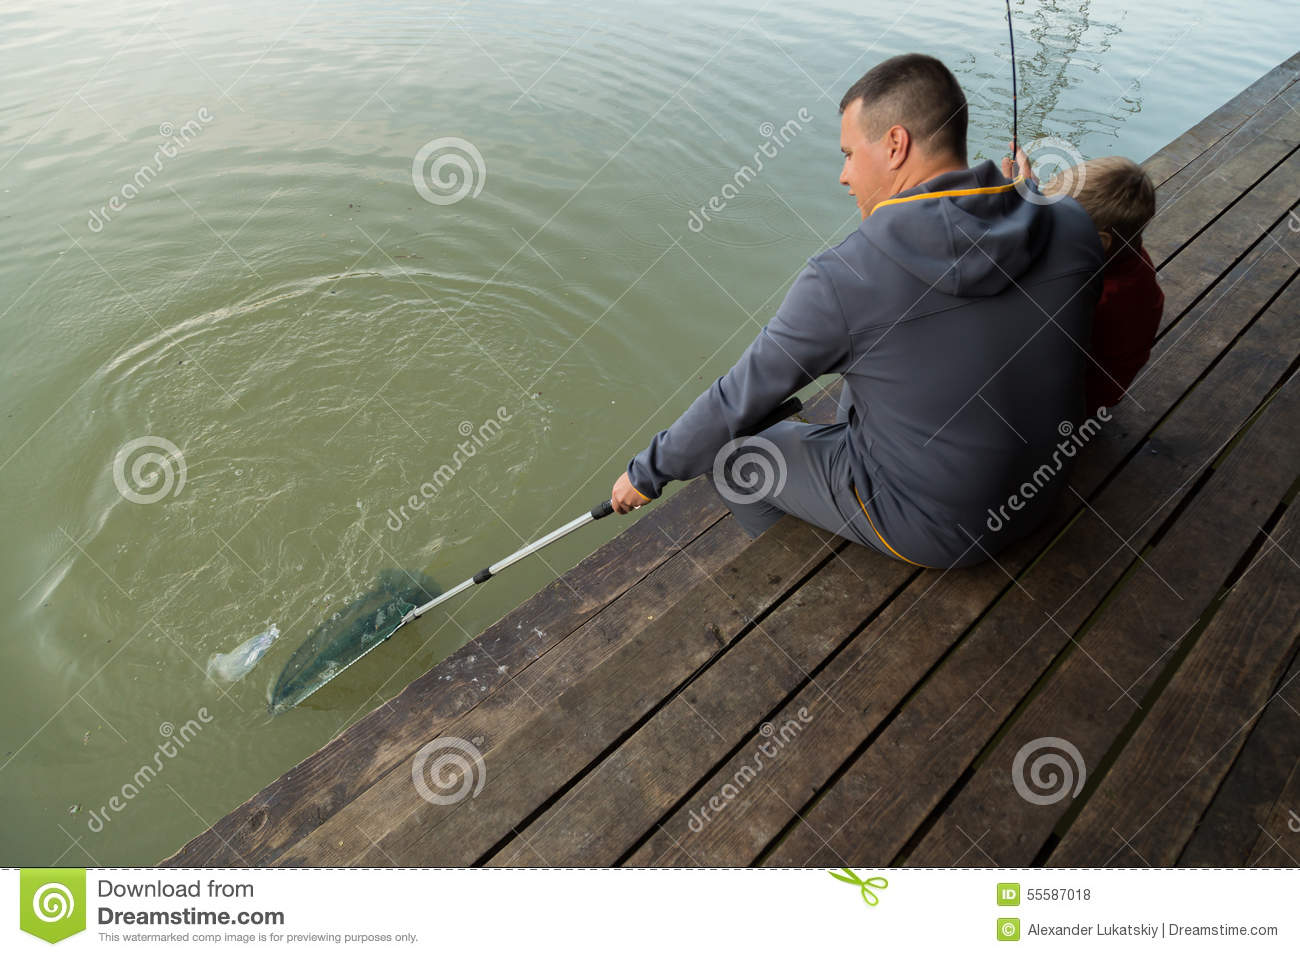 process essay how to catch fish How to build a fish pond or garden on the internet and there is so much conflicting information and after one false start have created a beautiful garden fish pond.